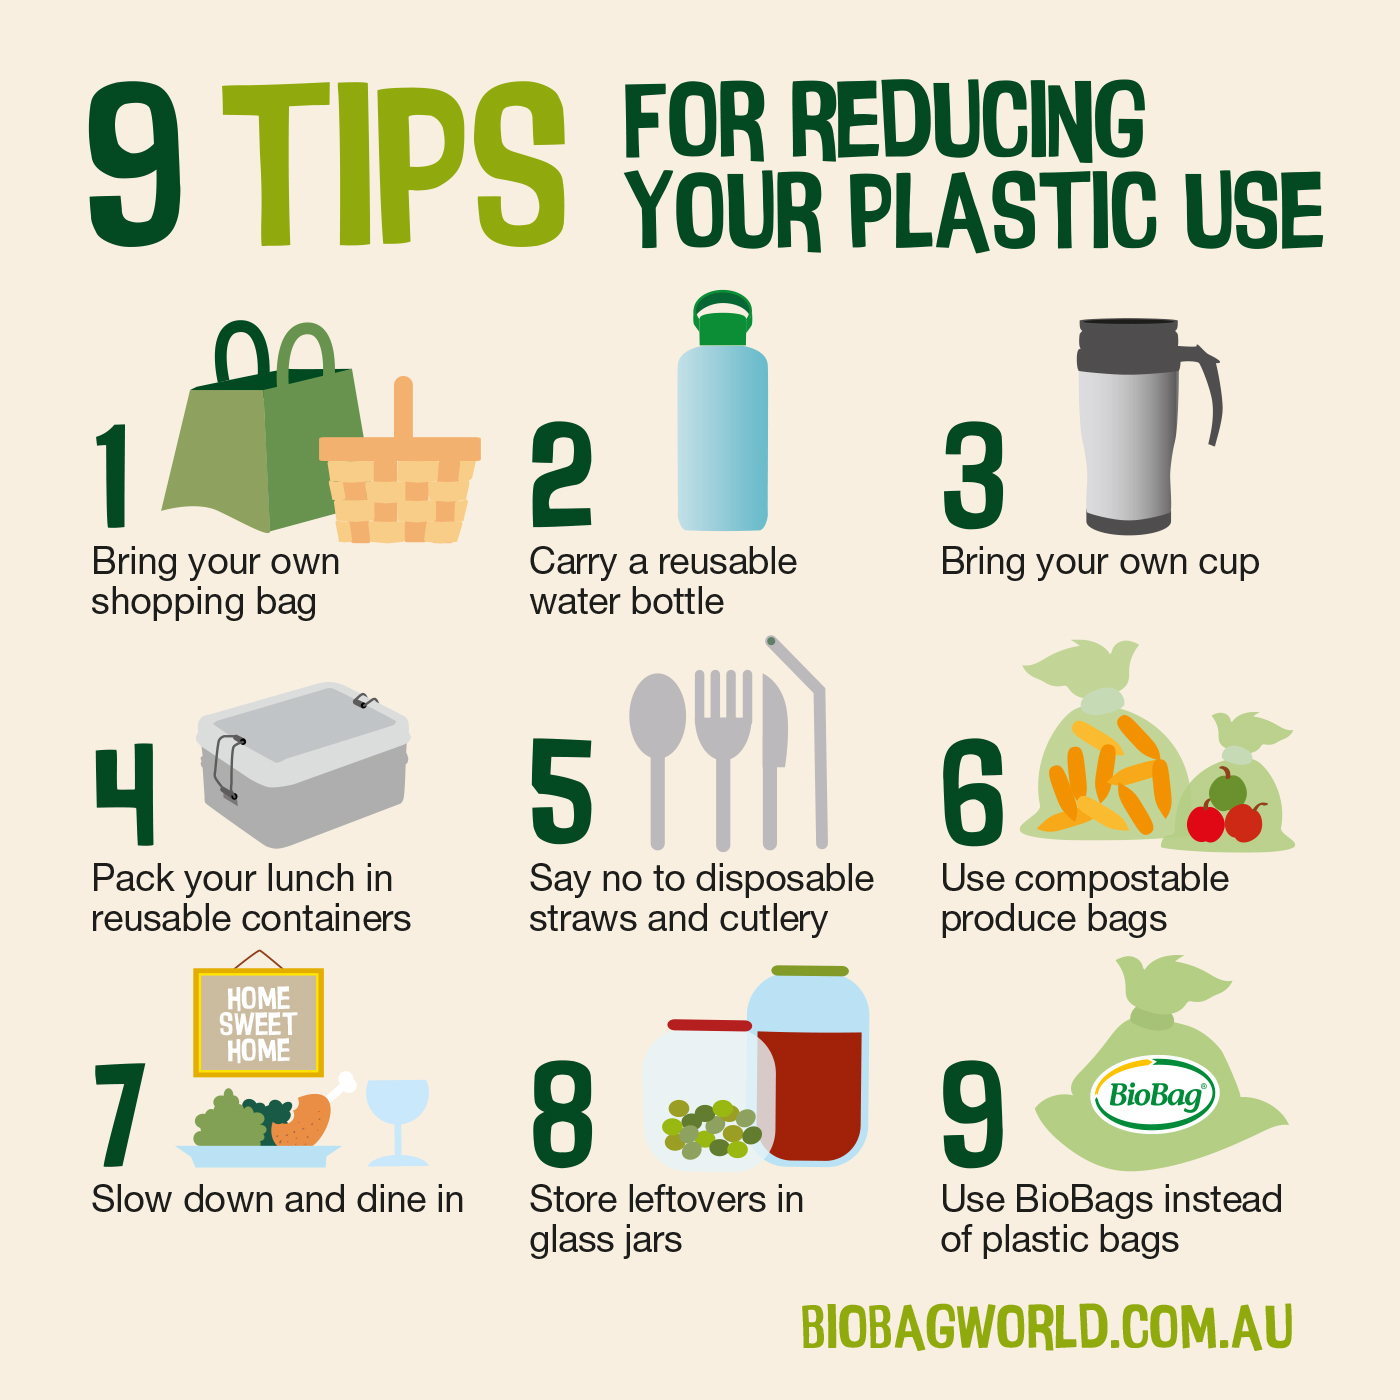 How to reduce your plastic use - BioBag World Australia